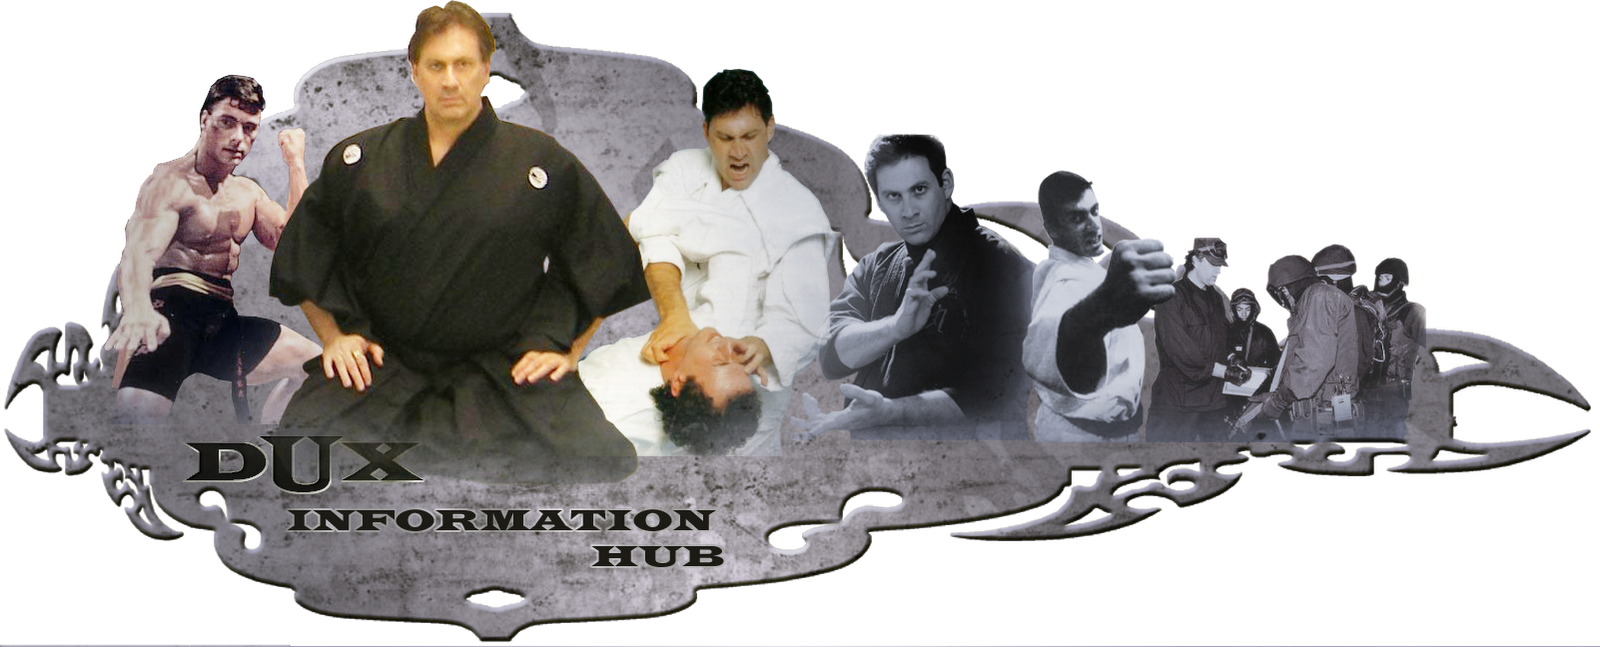 Frank W. Dux | Martial Arts, News, Photos and Videos